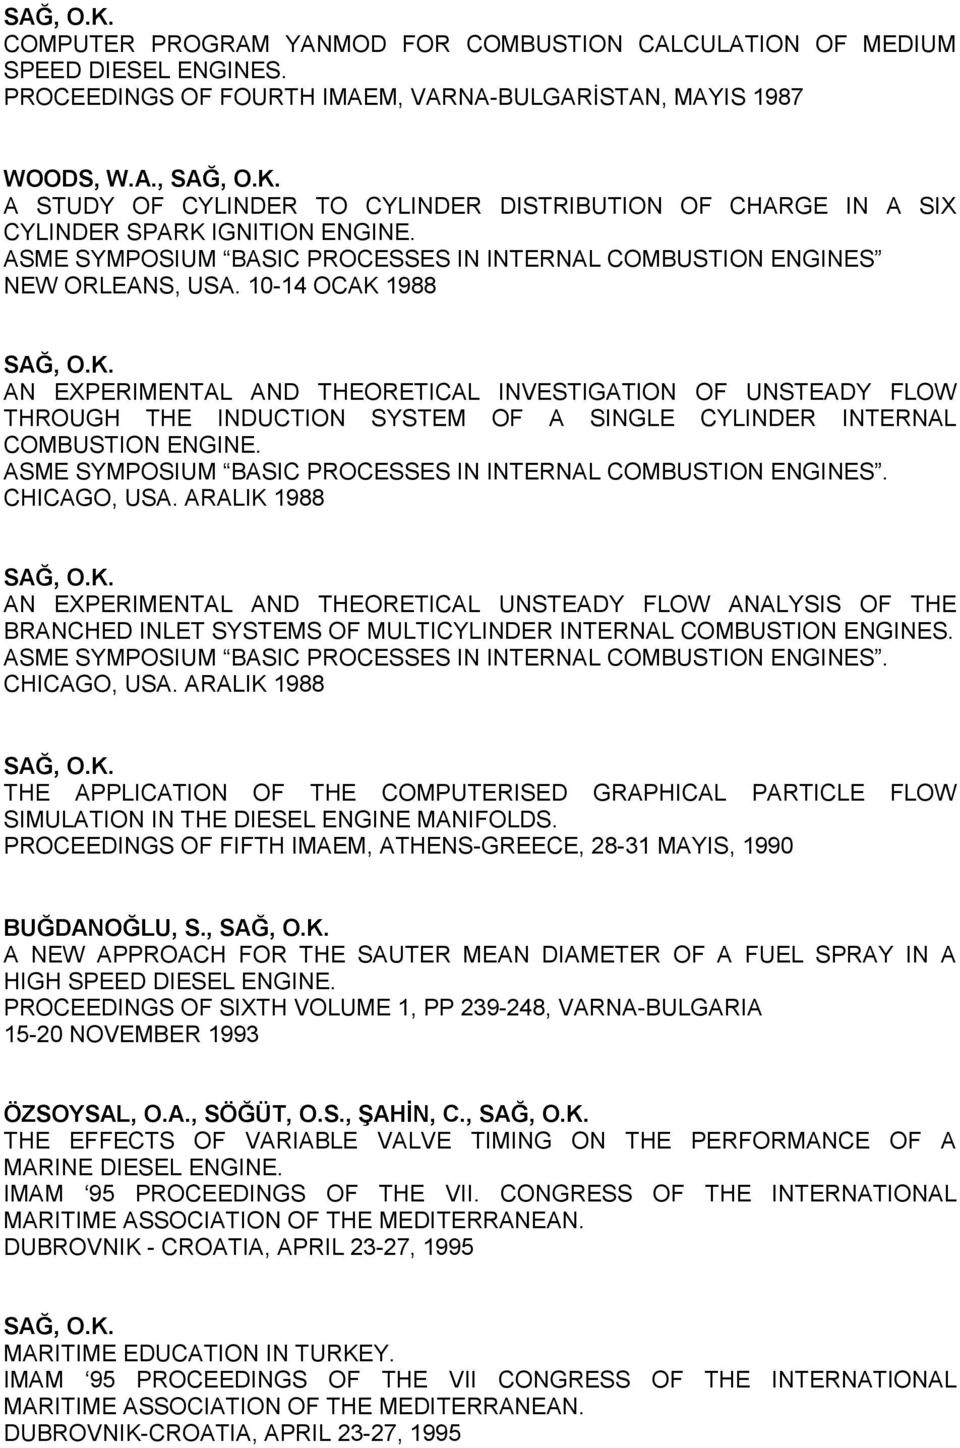 10-14 OCAK 1988 AN EXPERIMENTAL AND THEORETICAL INVESTIGATION OF UNSTEADY FLOW THROUGH THE INDUCTION SYSTEM OF A SINGLE CYLINDER INTERNAL COMBUSTION ENGINE.